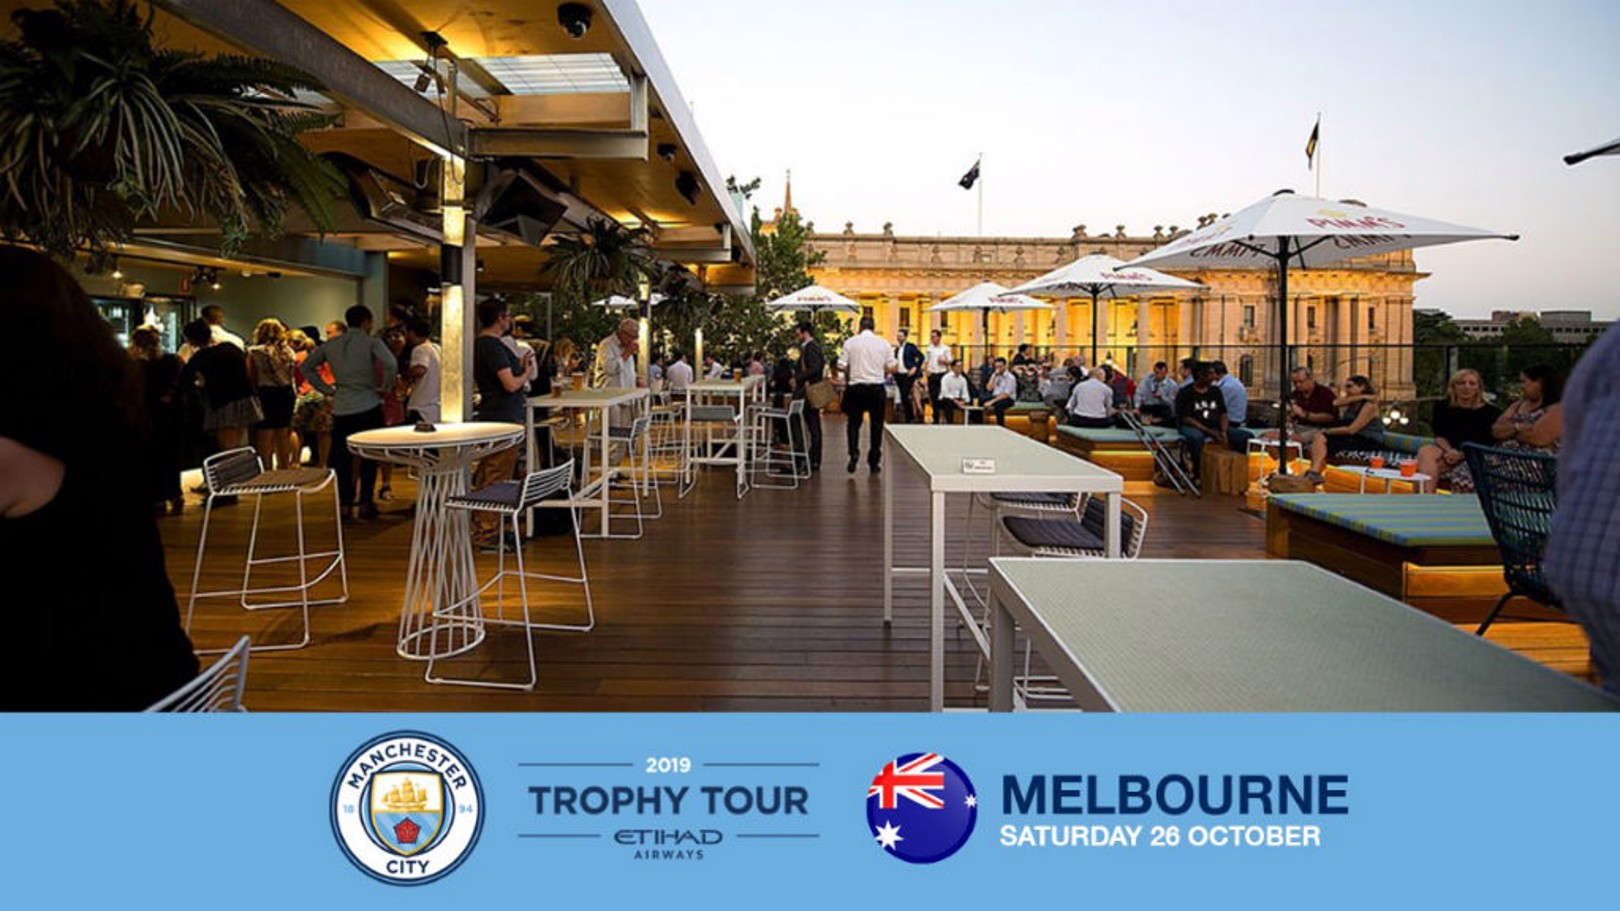 TROPHY TOUR: Get your hands on some silverware in Melbourne!